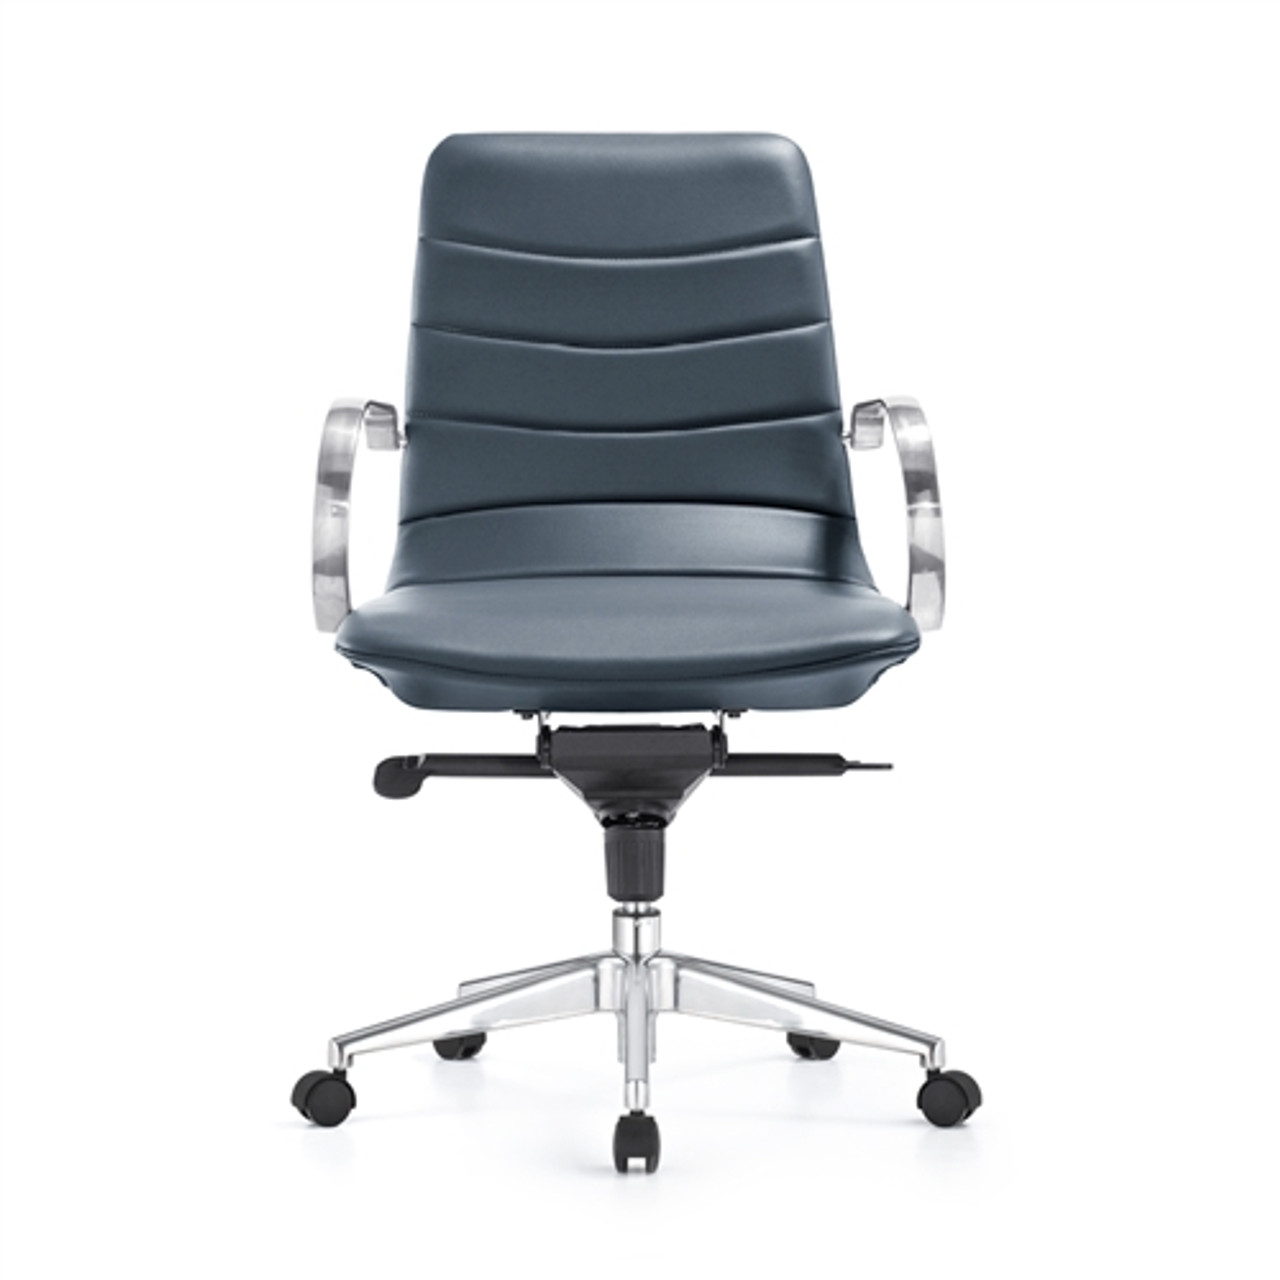 Image of: Woodstock Marie Mid Century Modern Office Chair